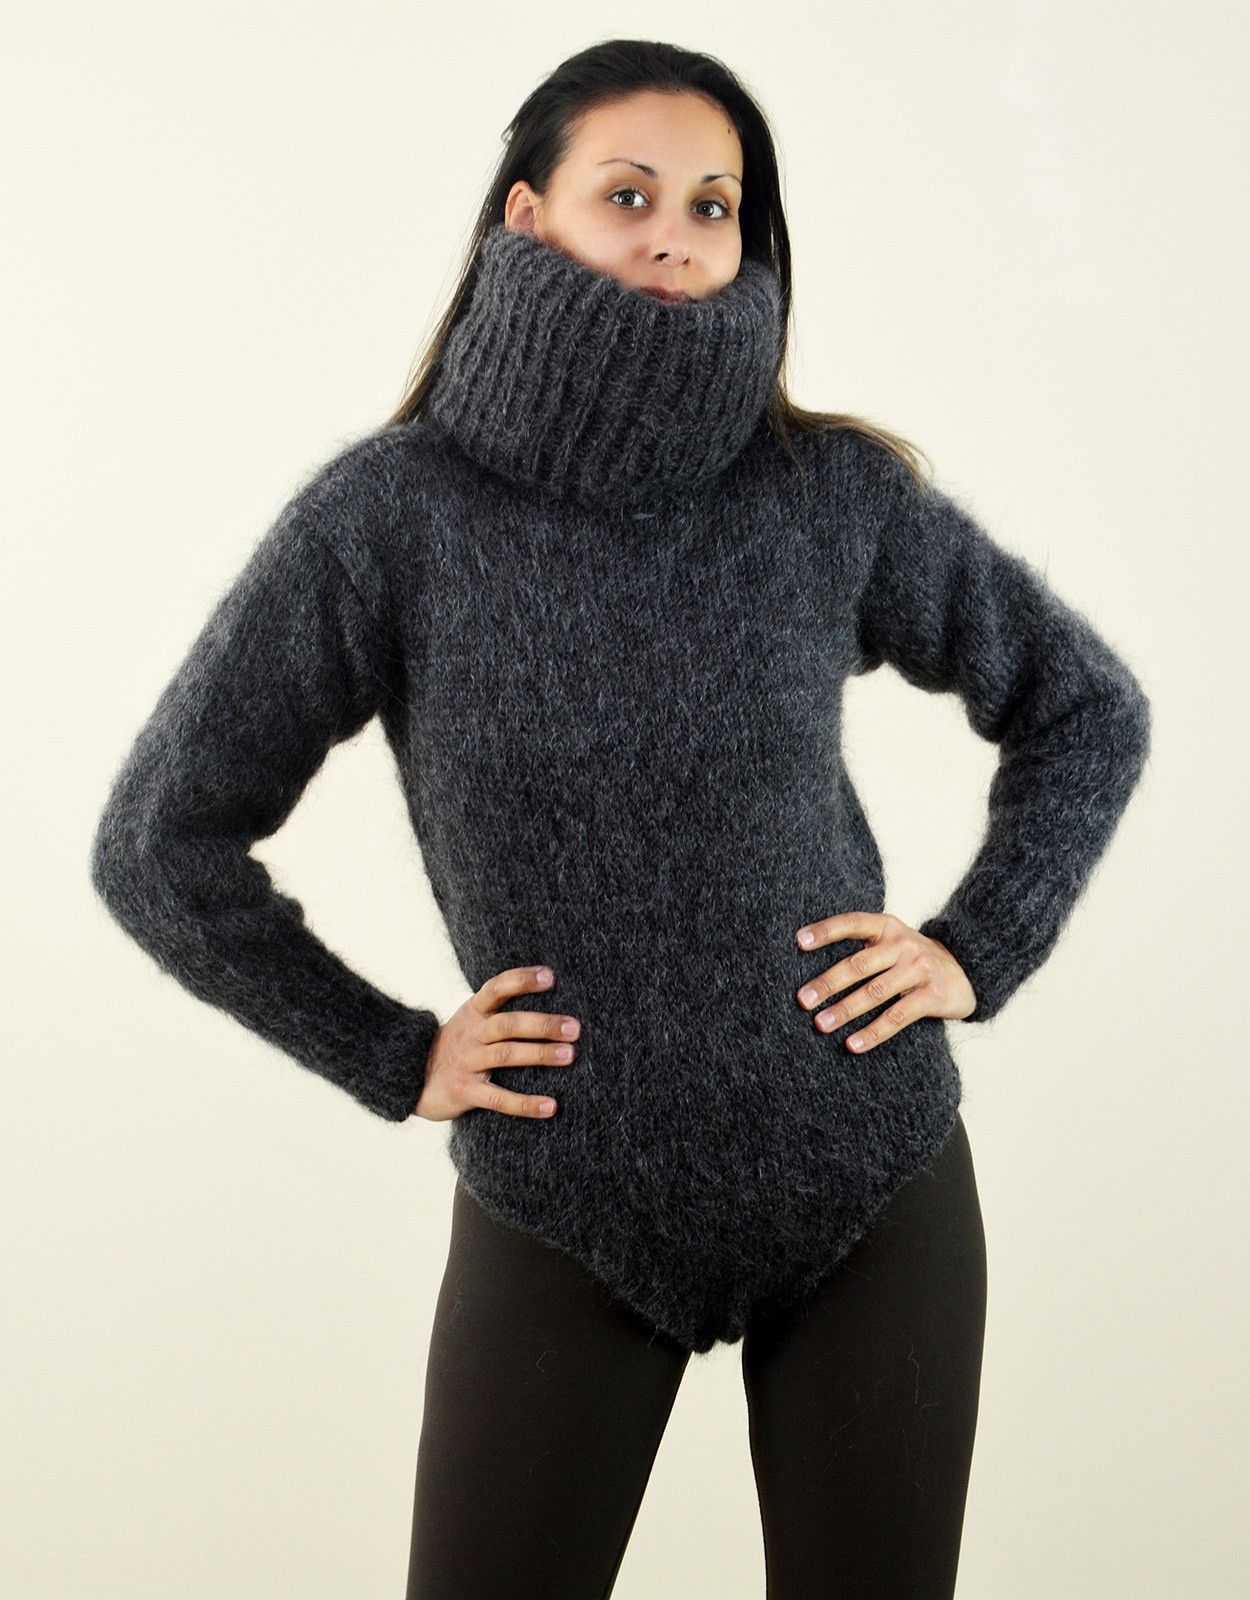 4ea61bda0d Super sexy Hand knitted mohair sweater bodysuit long turtleneck Dark Gray  color fuzzy and fluffy plain design by Extravagantza Handcrafted boutique  knitwear